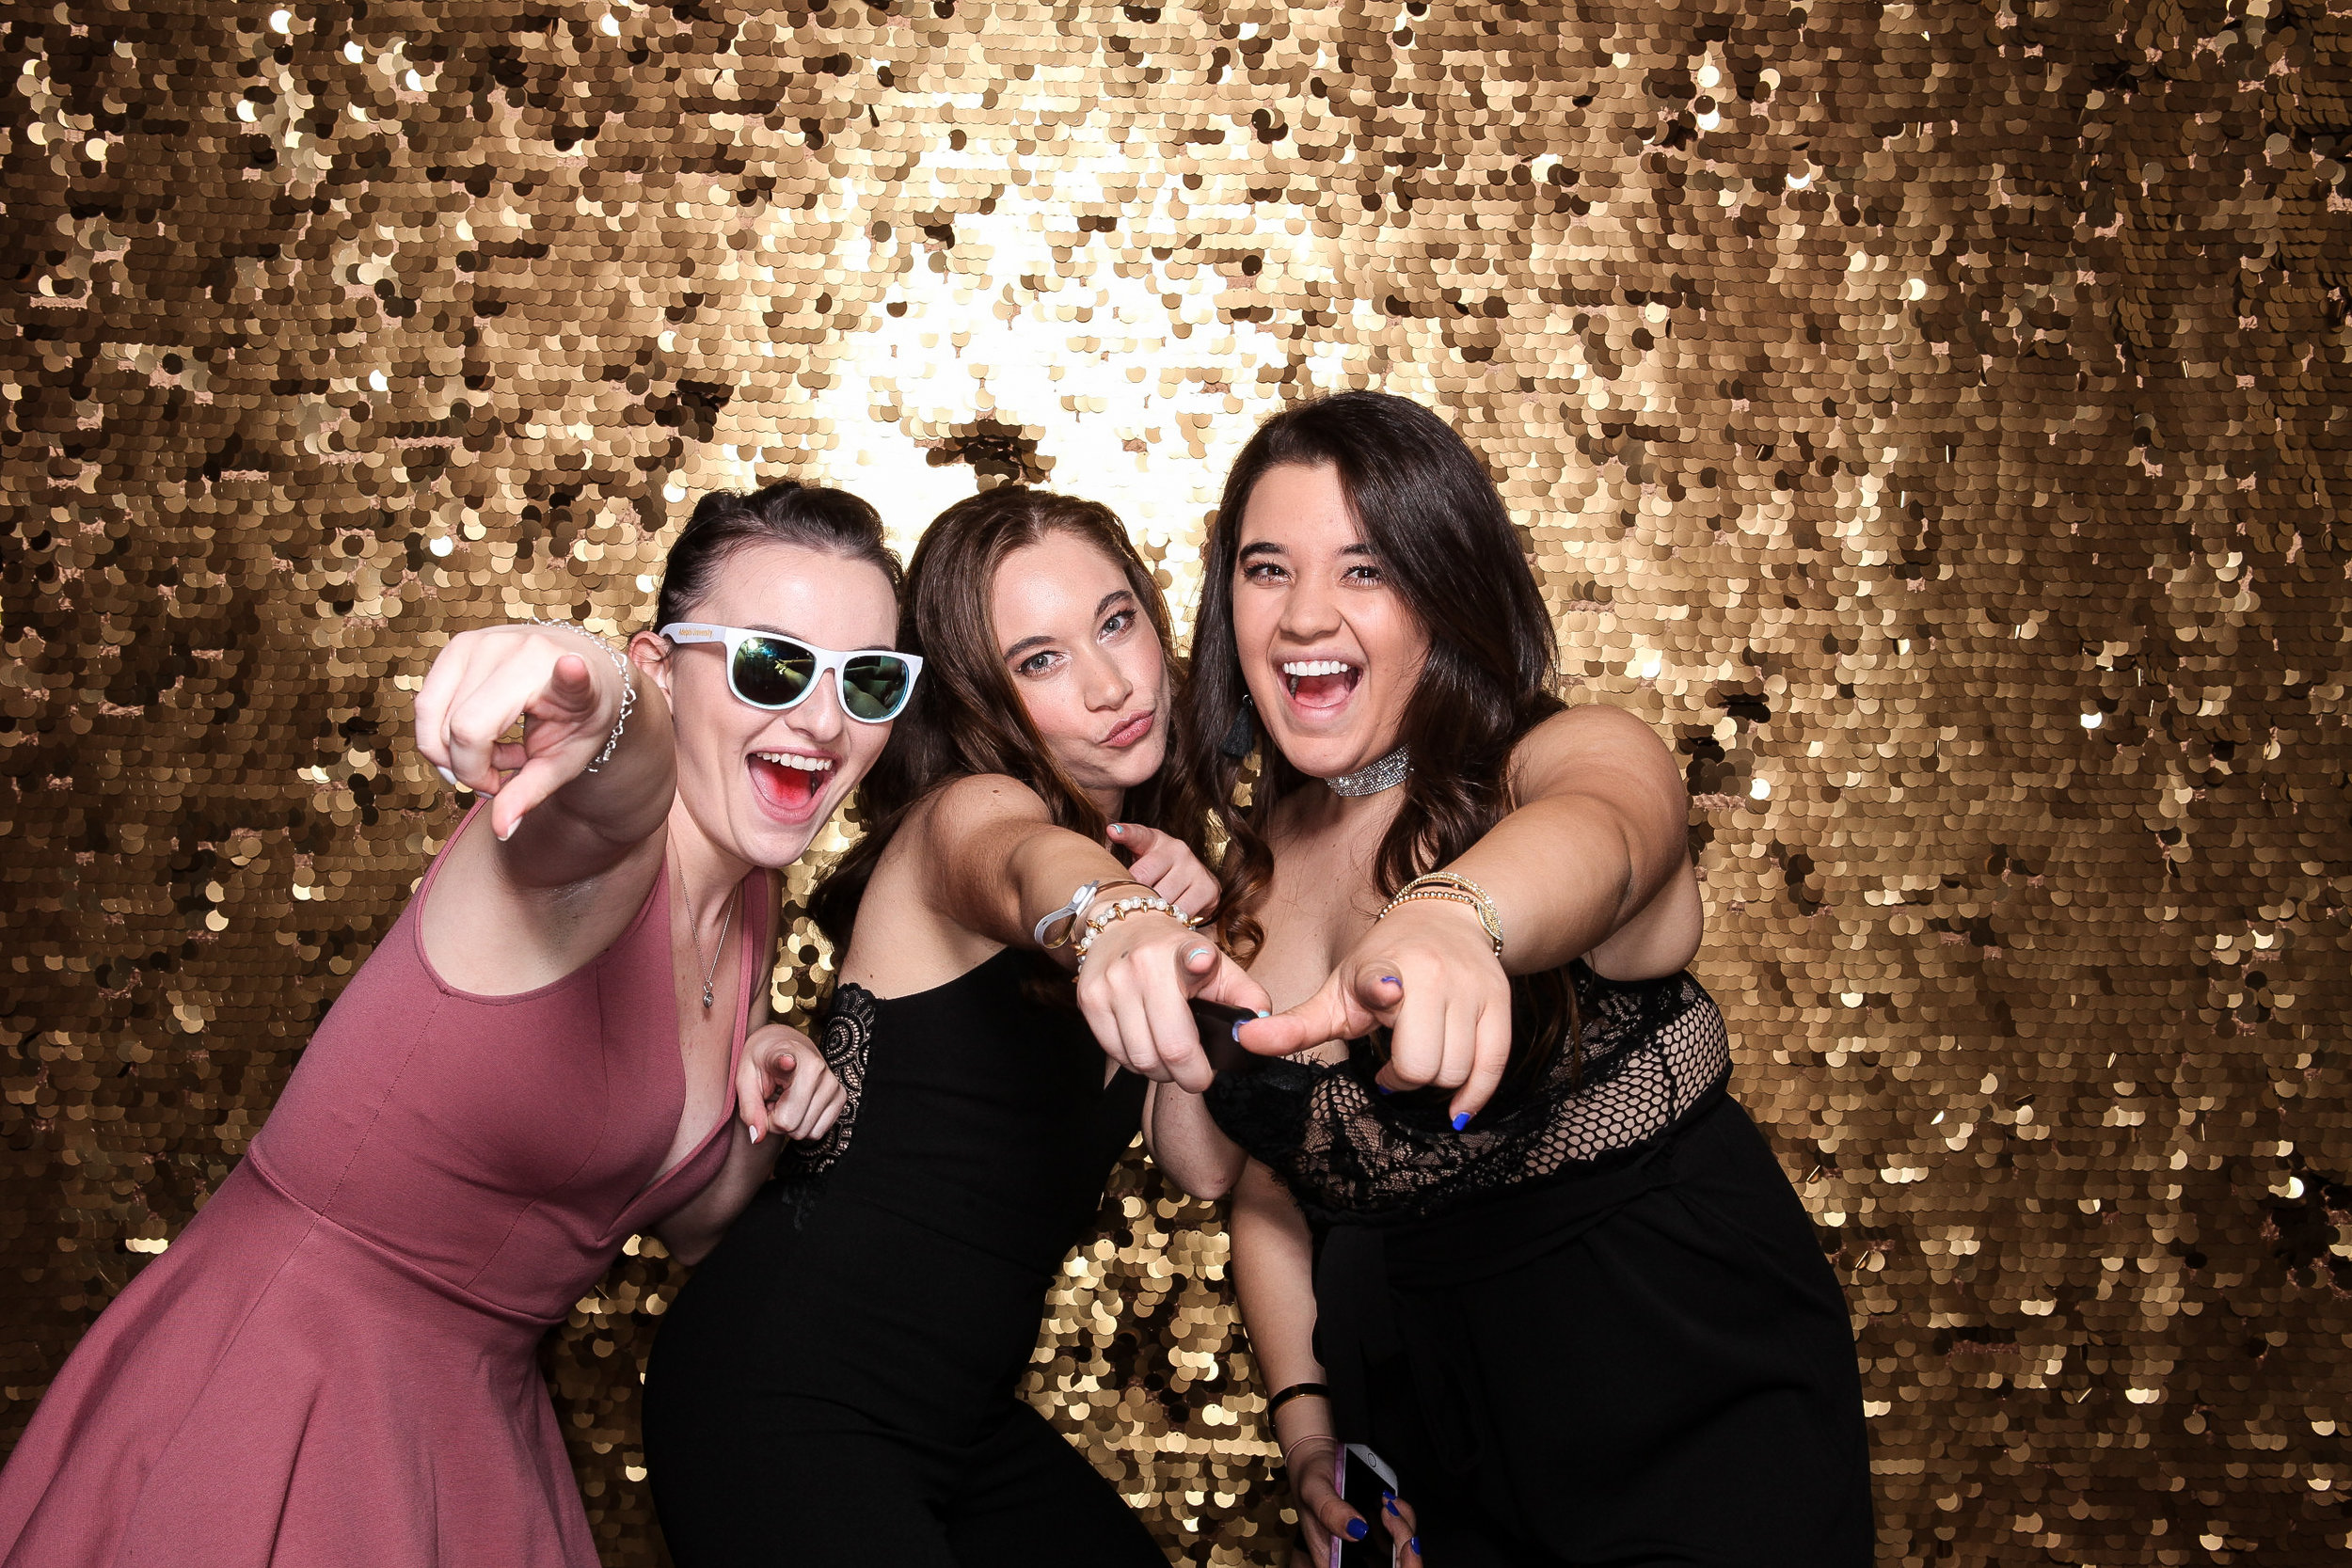 20190503_Adelphi_Senior_Formal-266.jpg